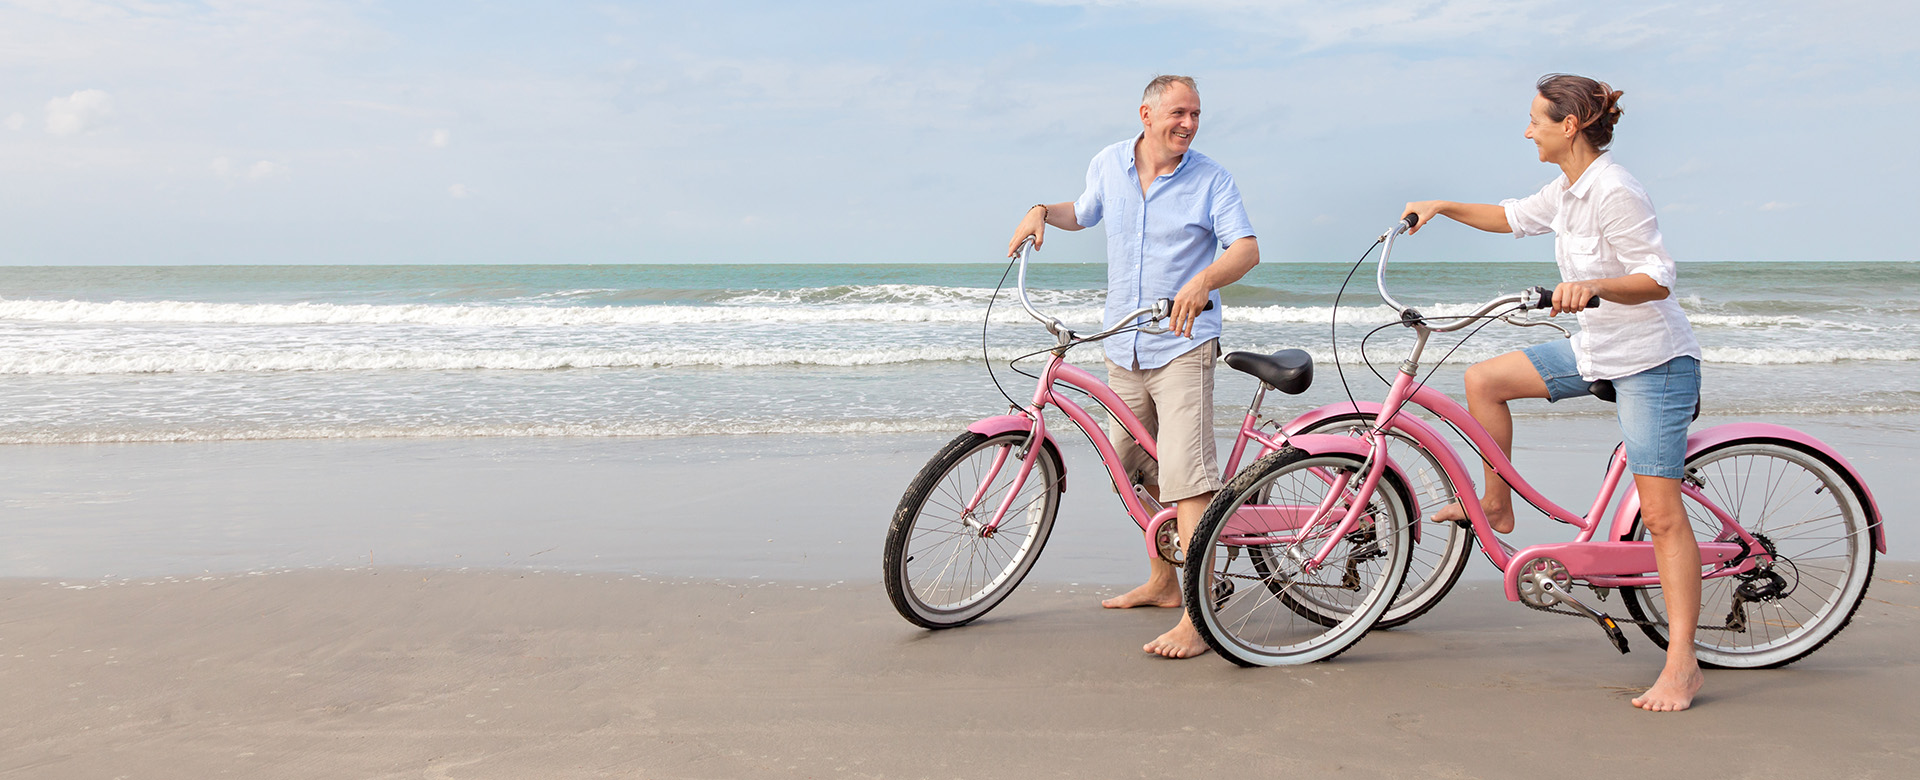 Mature couple riding bikes outdoors on beach at sunset